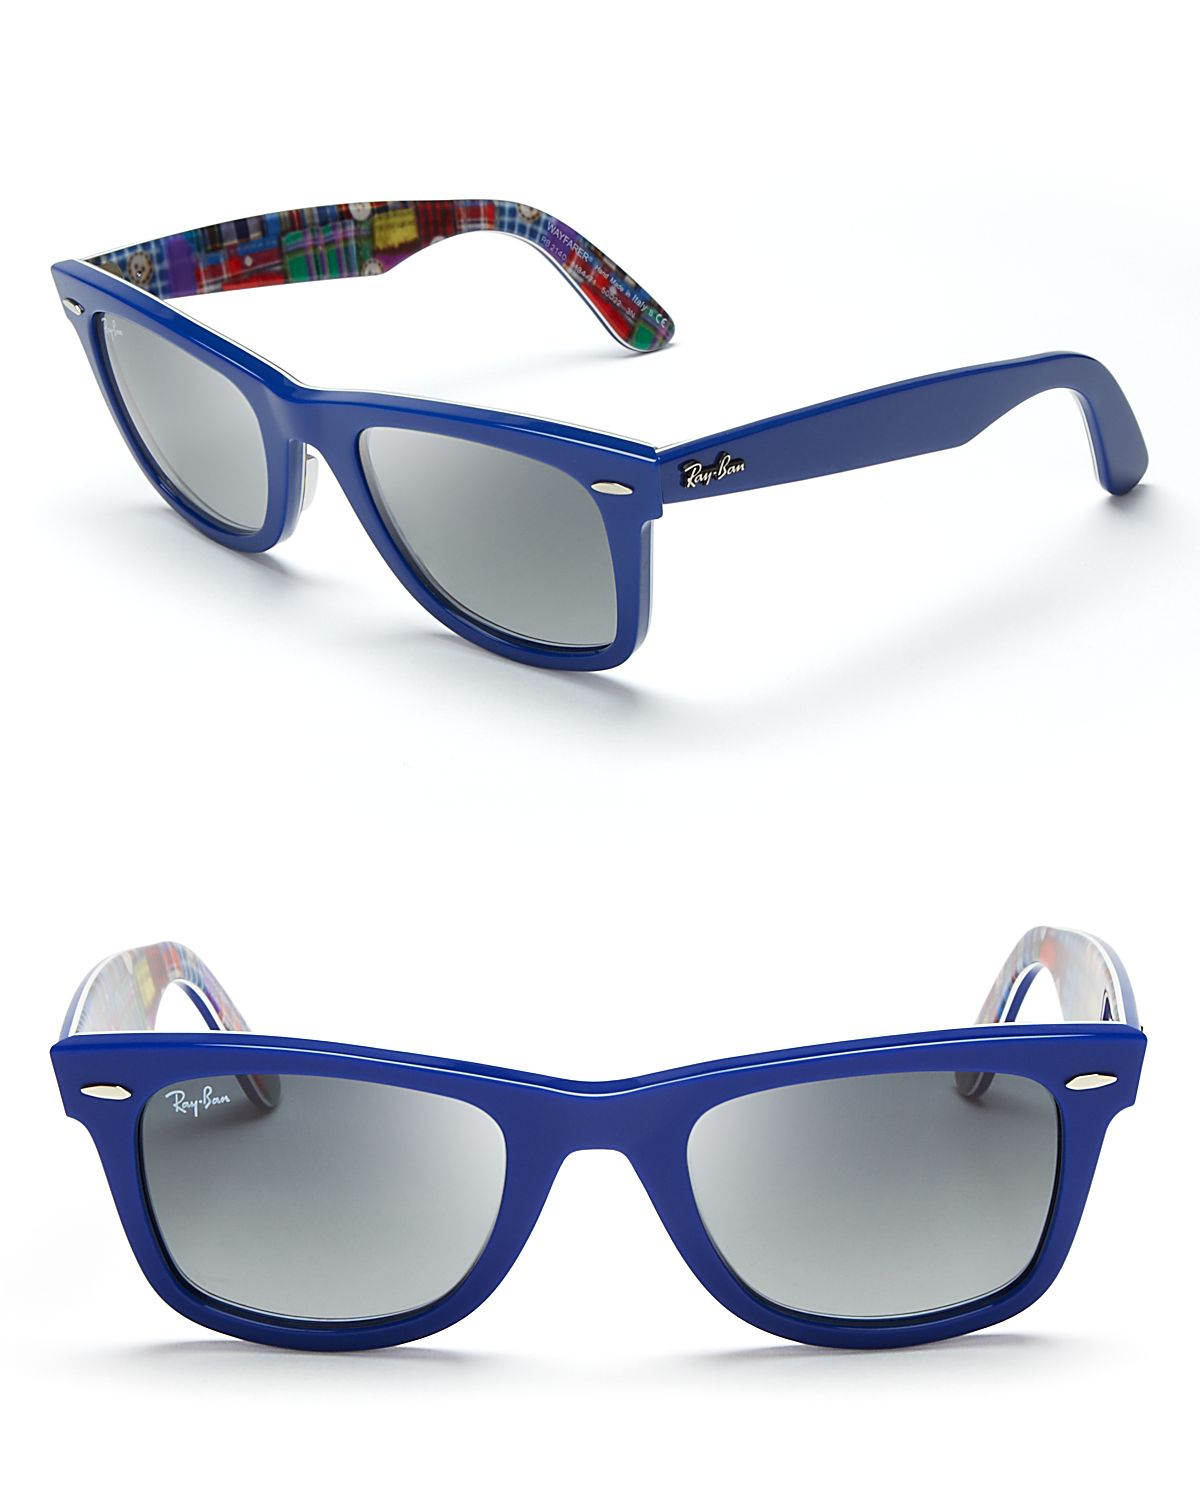 9a4a850c09 Ray-Ban Original Wayfarer Sunglasses in Blue - Lyst